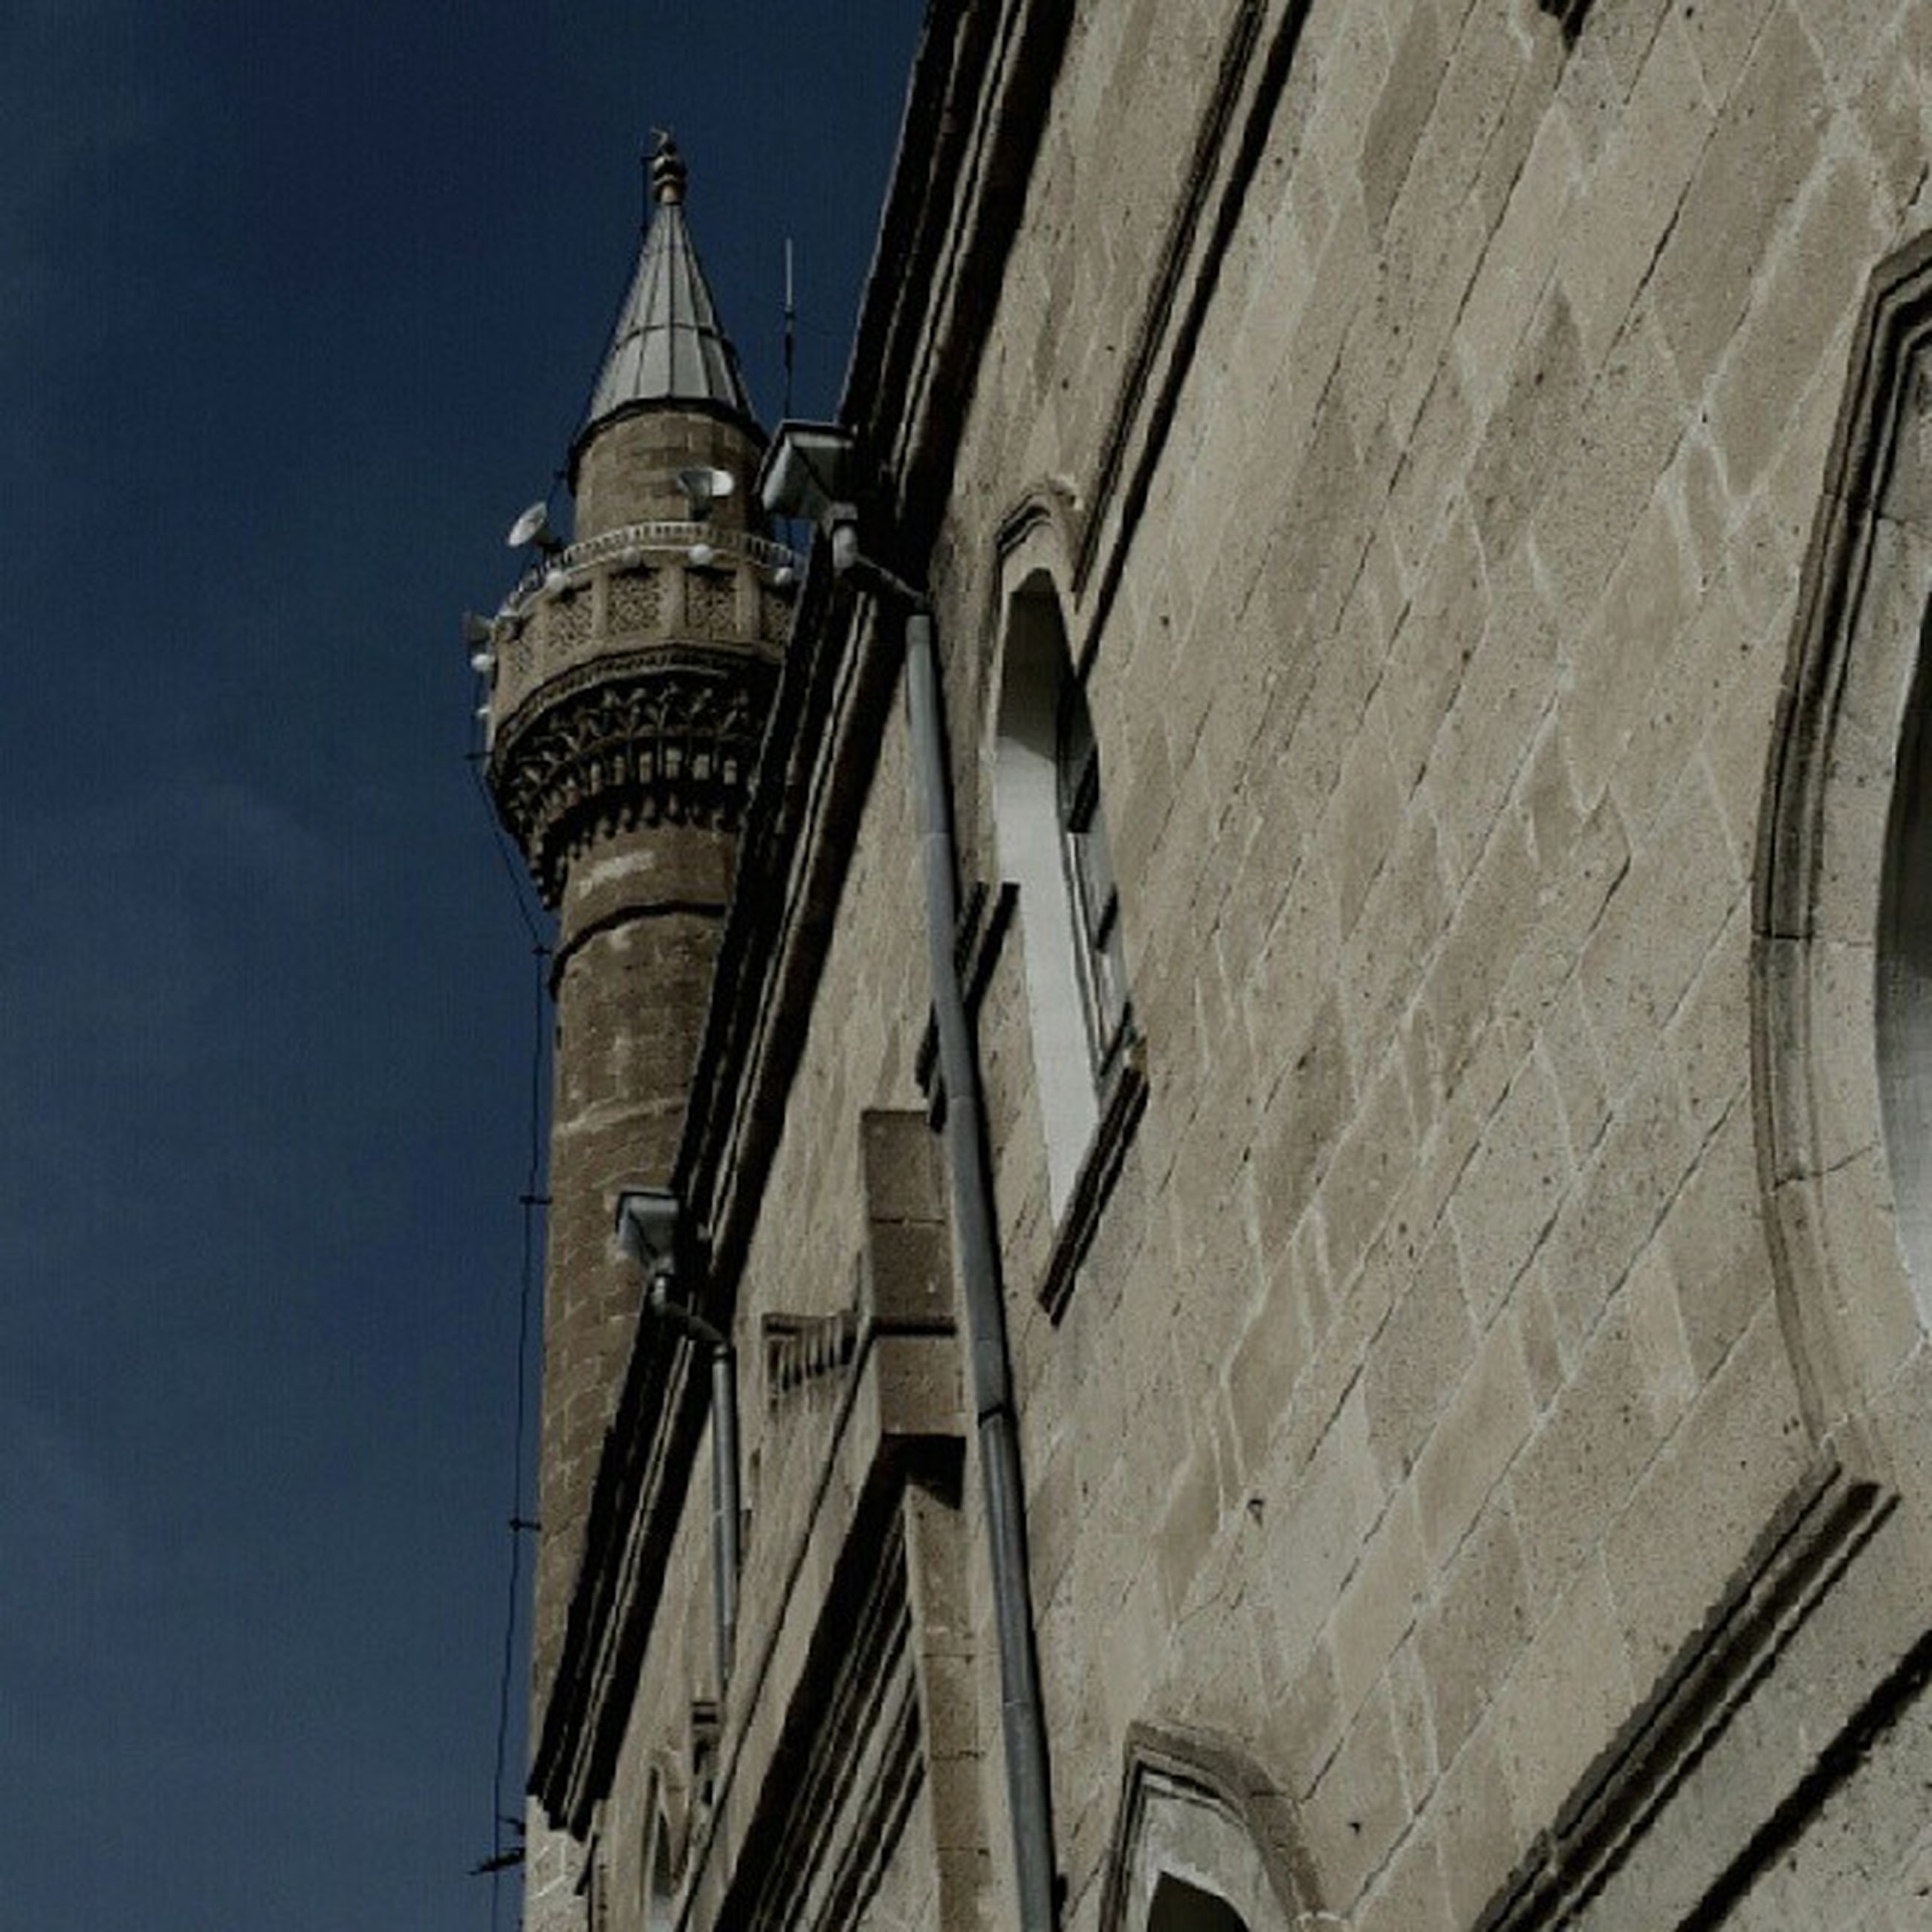 low angle view, architecture, built structure, building exterior, clear sky, tower, blue, sky, famous place, travel destinations, church, tall - high, city, day, no people, religion, capital cities, outdoors, building, place of worship